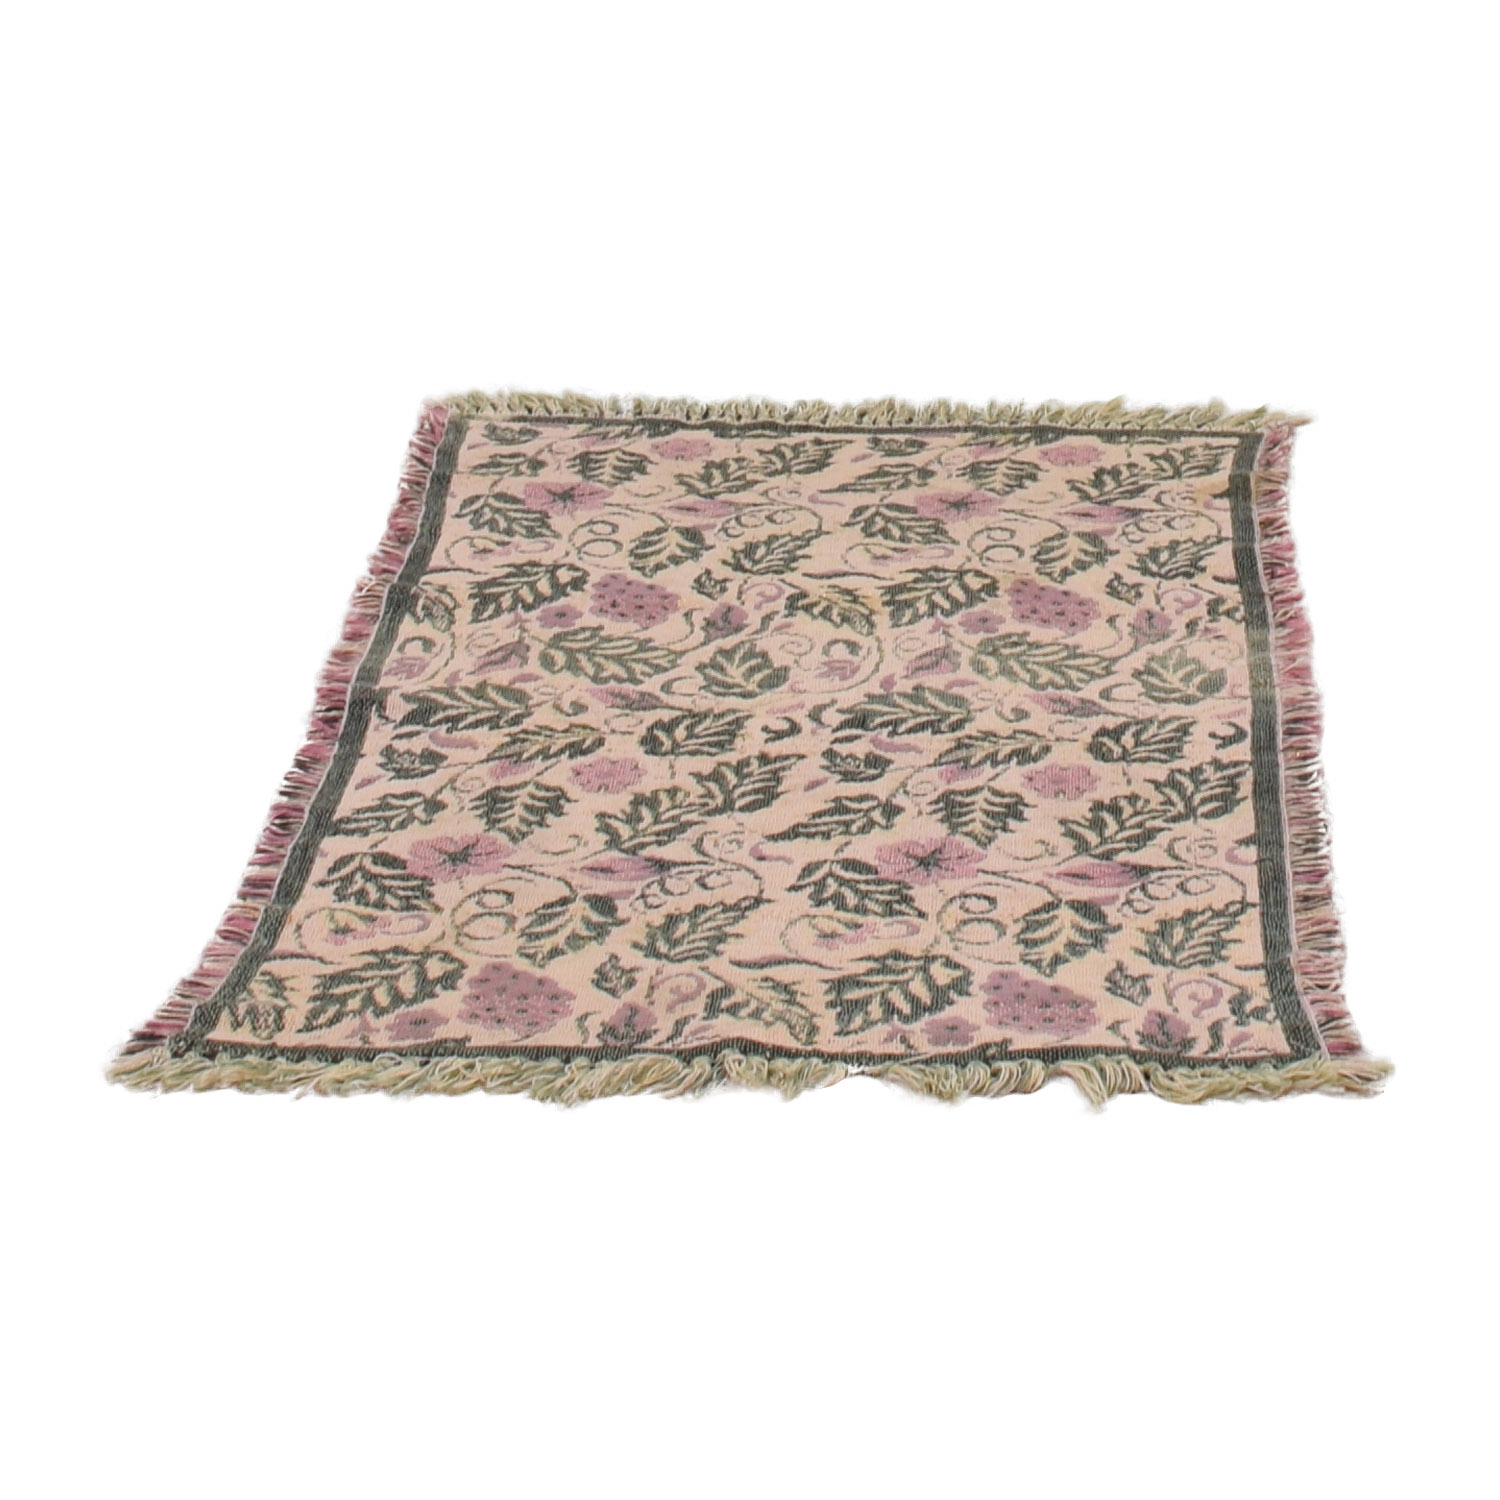 Floral and Grape Rug / Decor